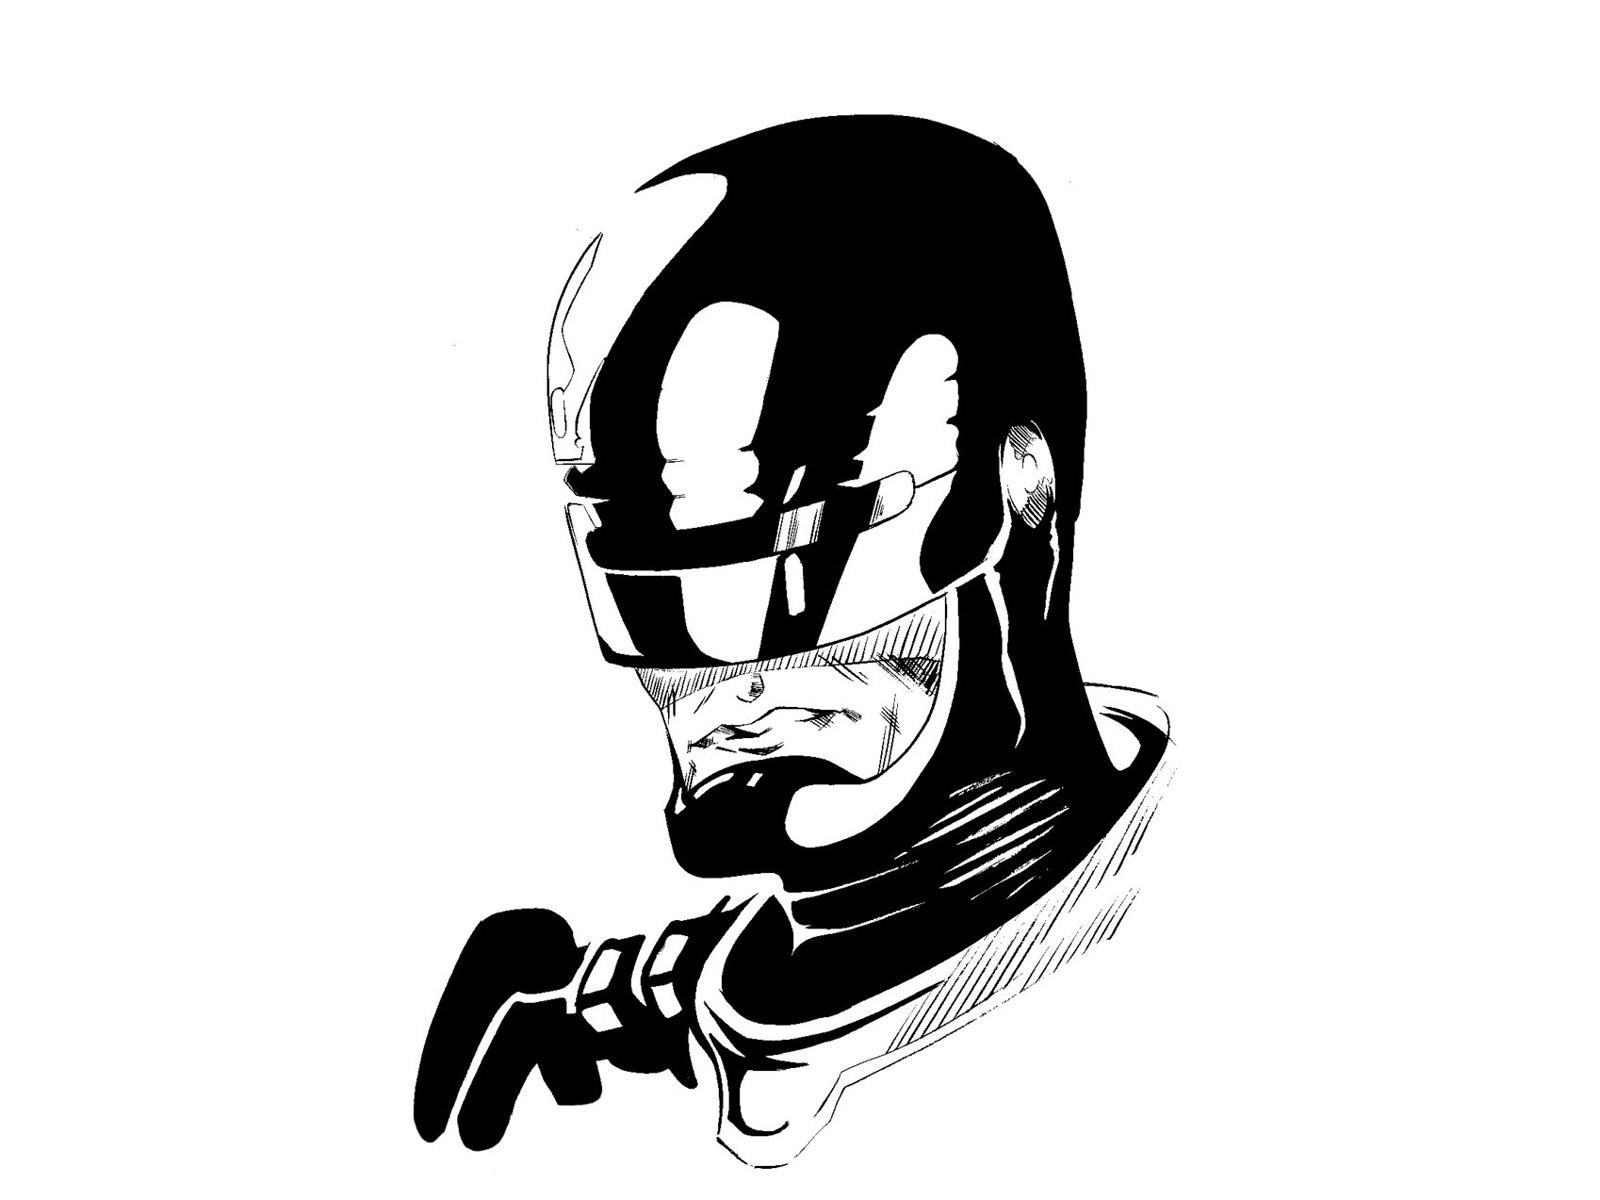 robocop wallpaper and background image | 1600x1200 | id:444055